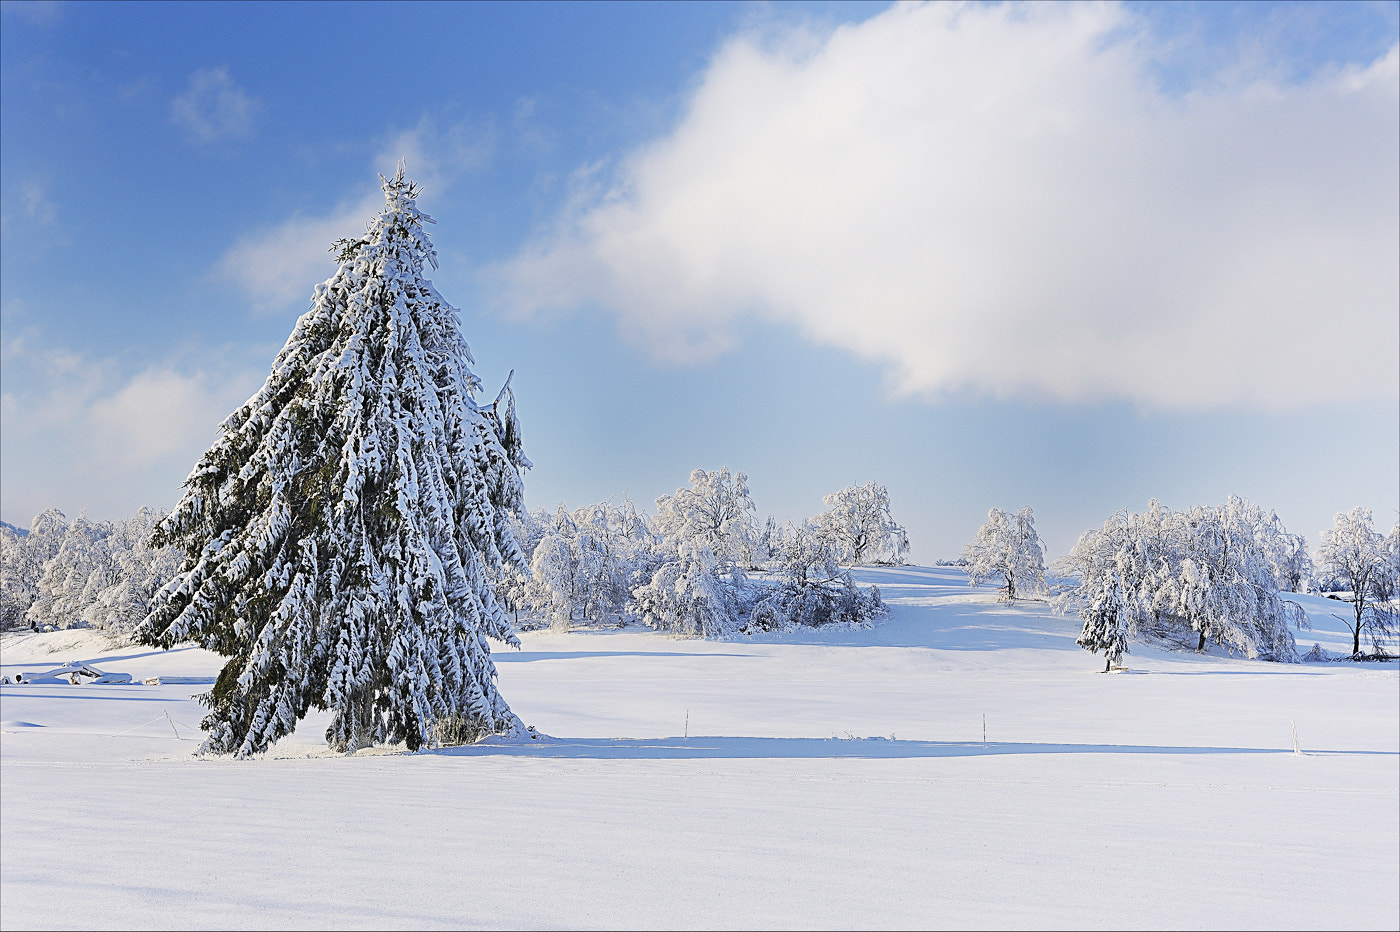 Photograph snow by mauro maione on 500px